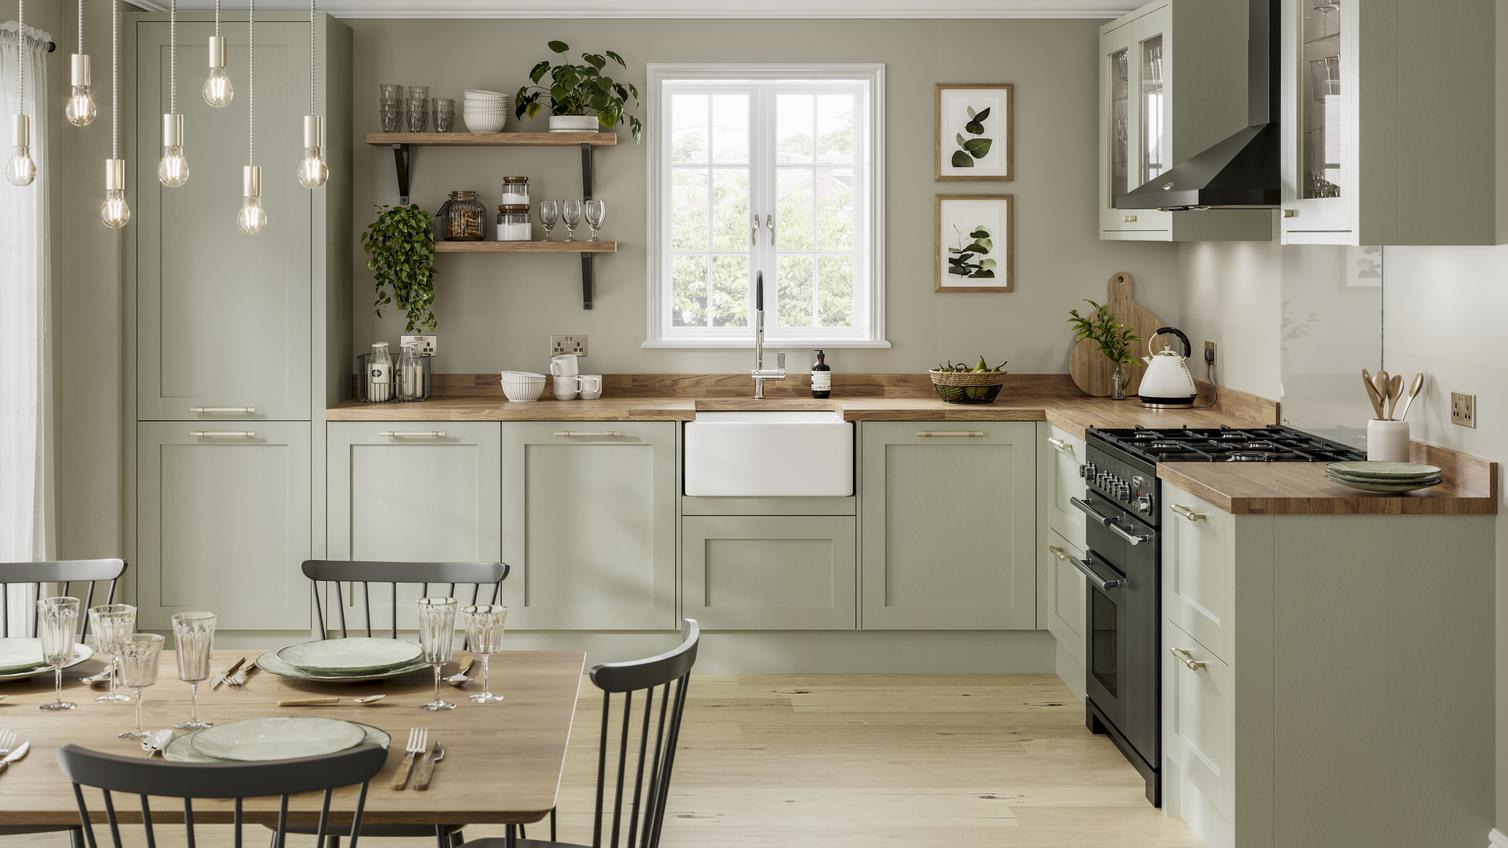 Sage green kitchen idea with shaker doors. Includes a Belfast sink, wood worktops, black extractor and black range cooker.